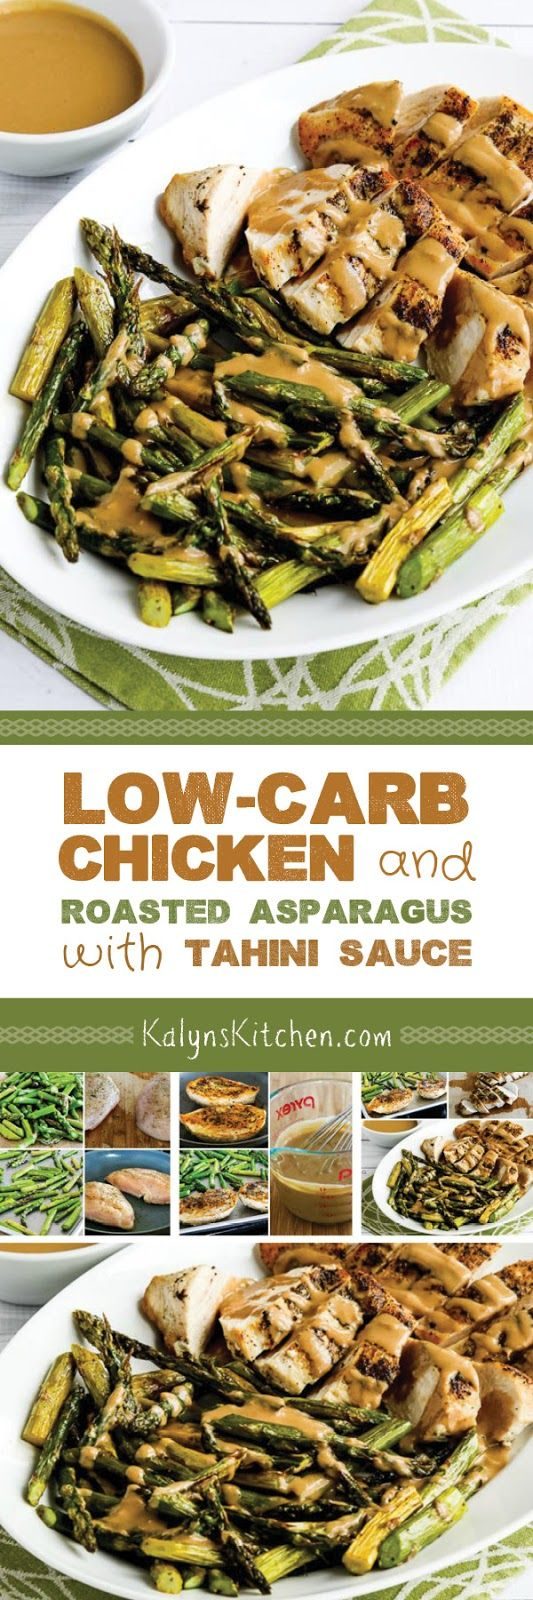 Low-Carb Chicken and Roasted Asparagus with Tahini Sauce (Video)